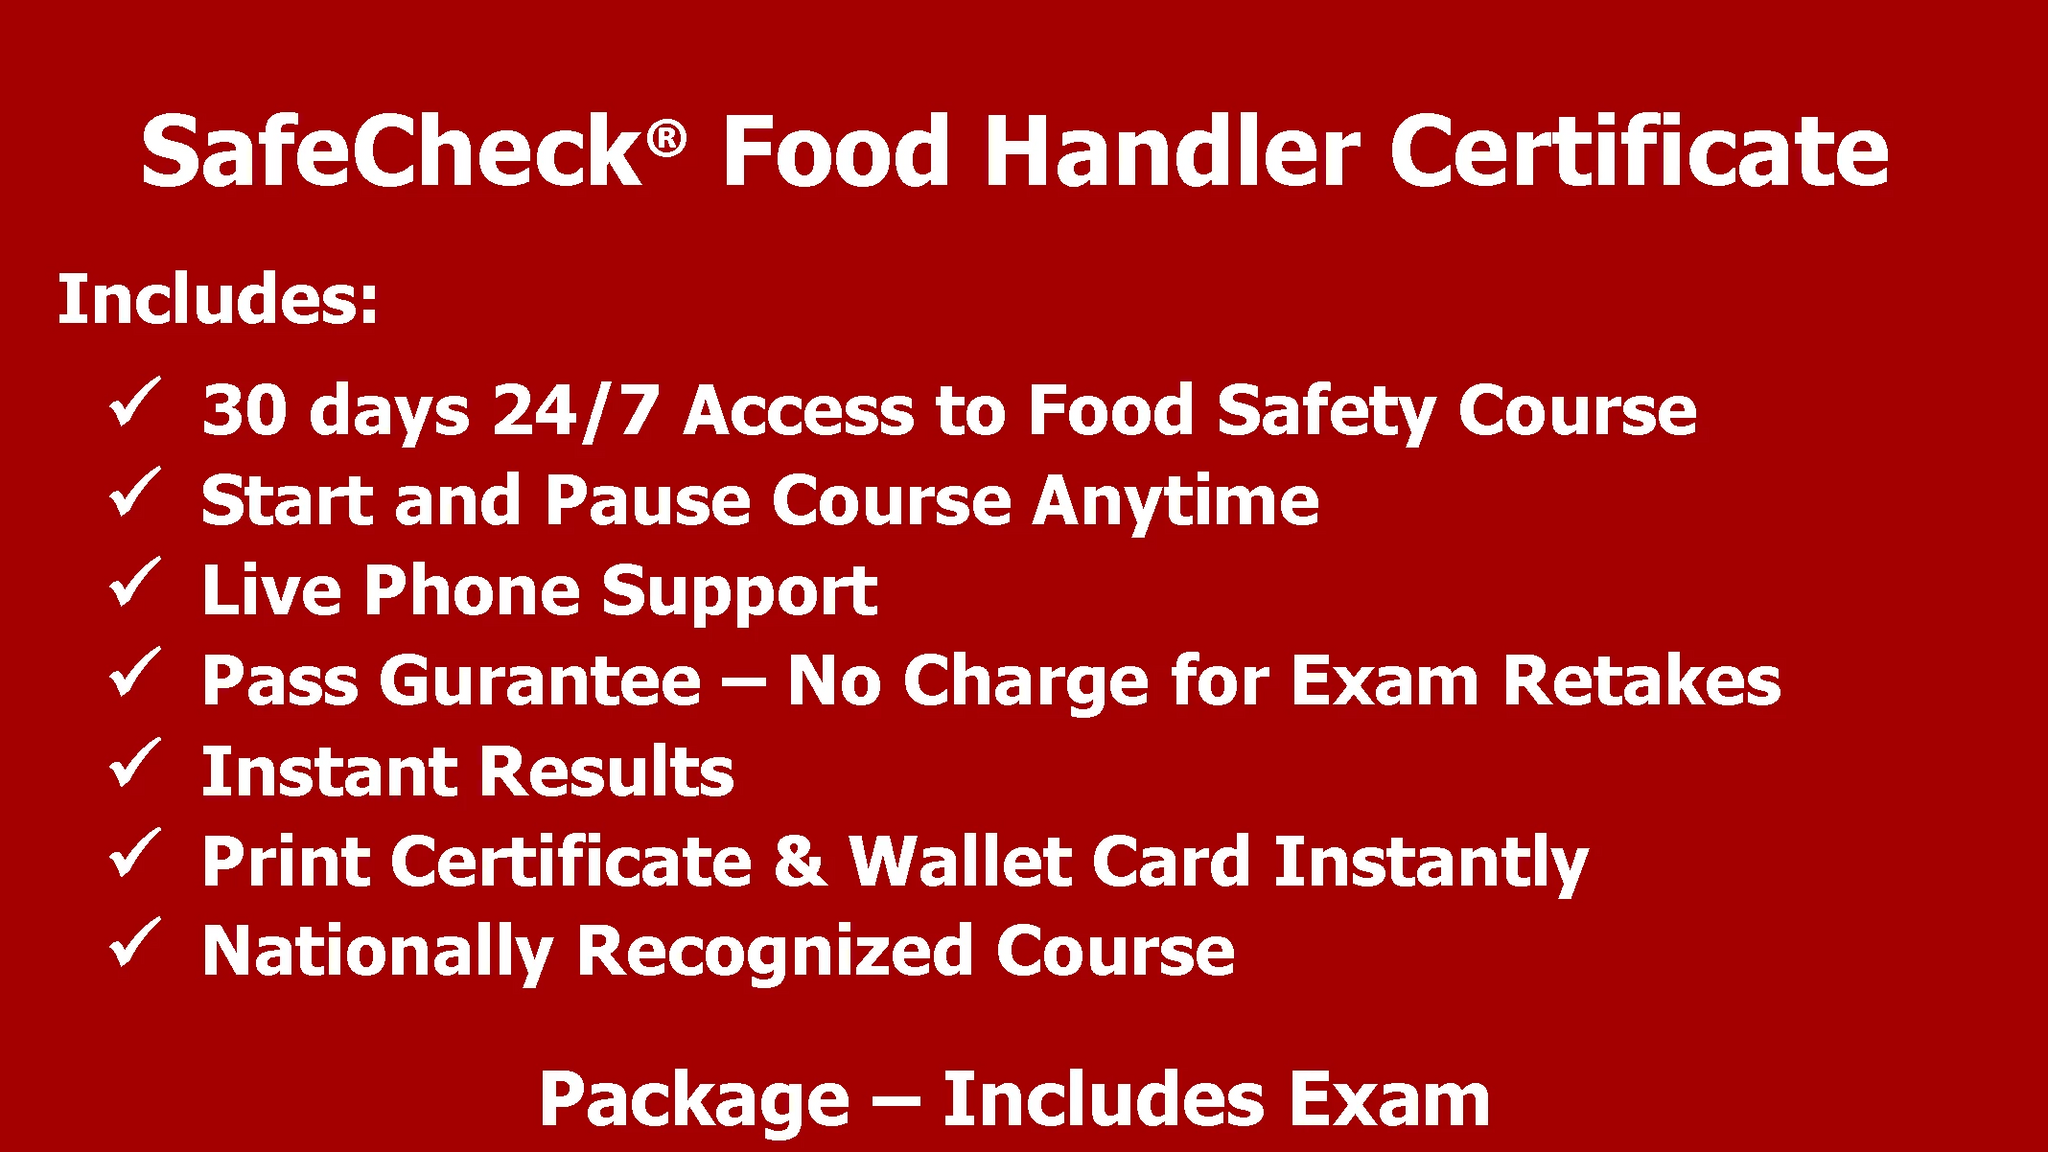 Food Safety Certification Safecheck Advanced Includes Exam